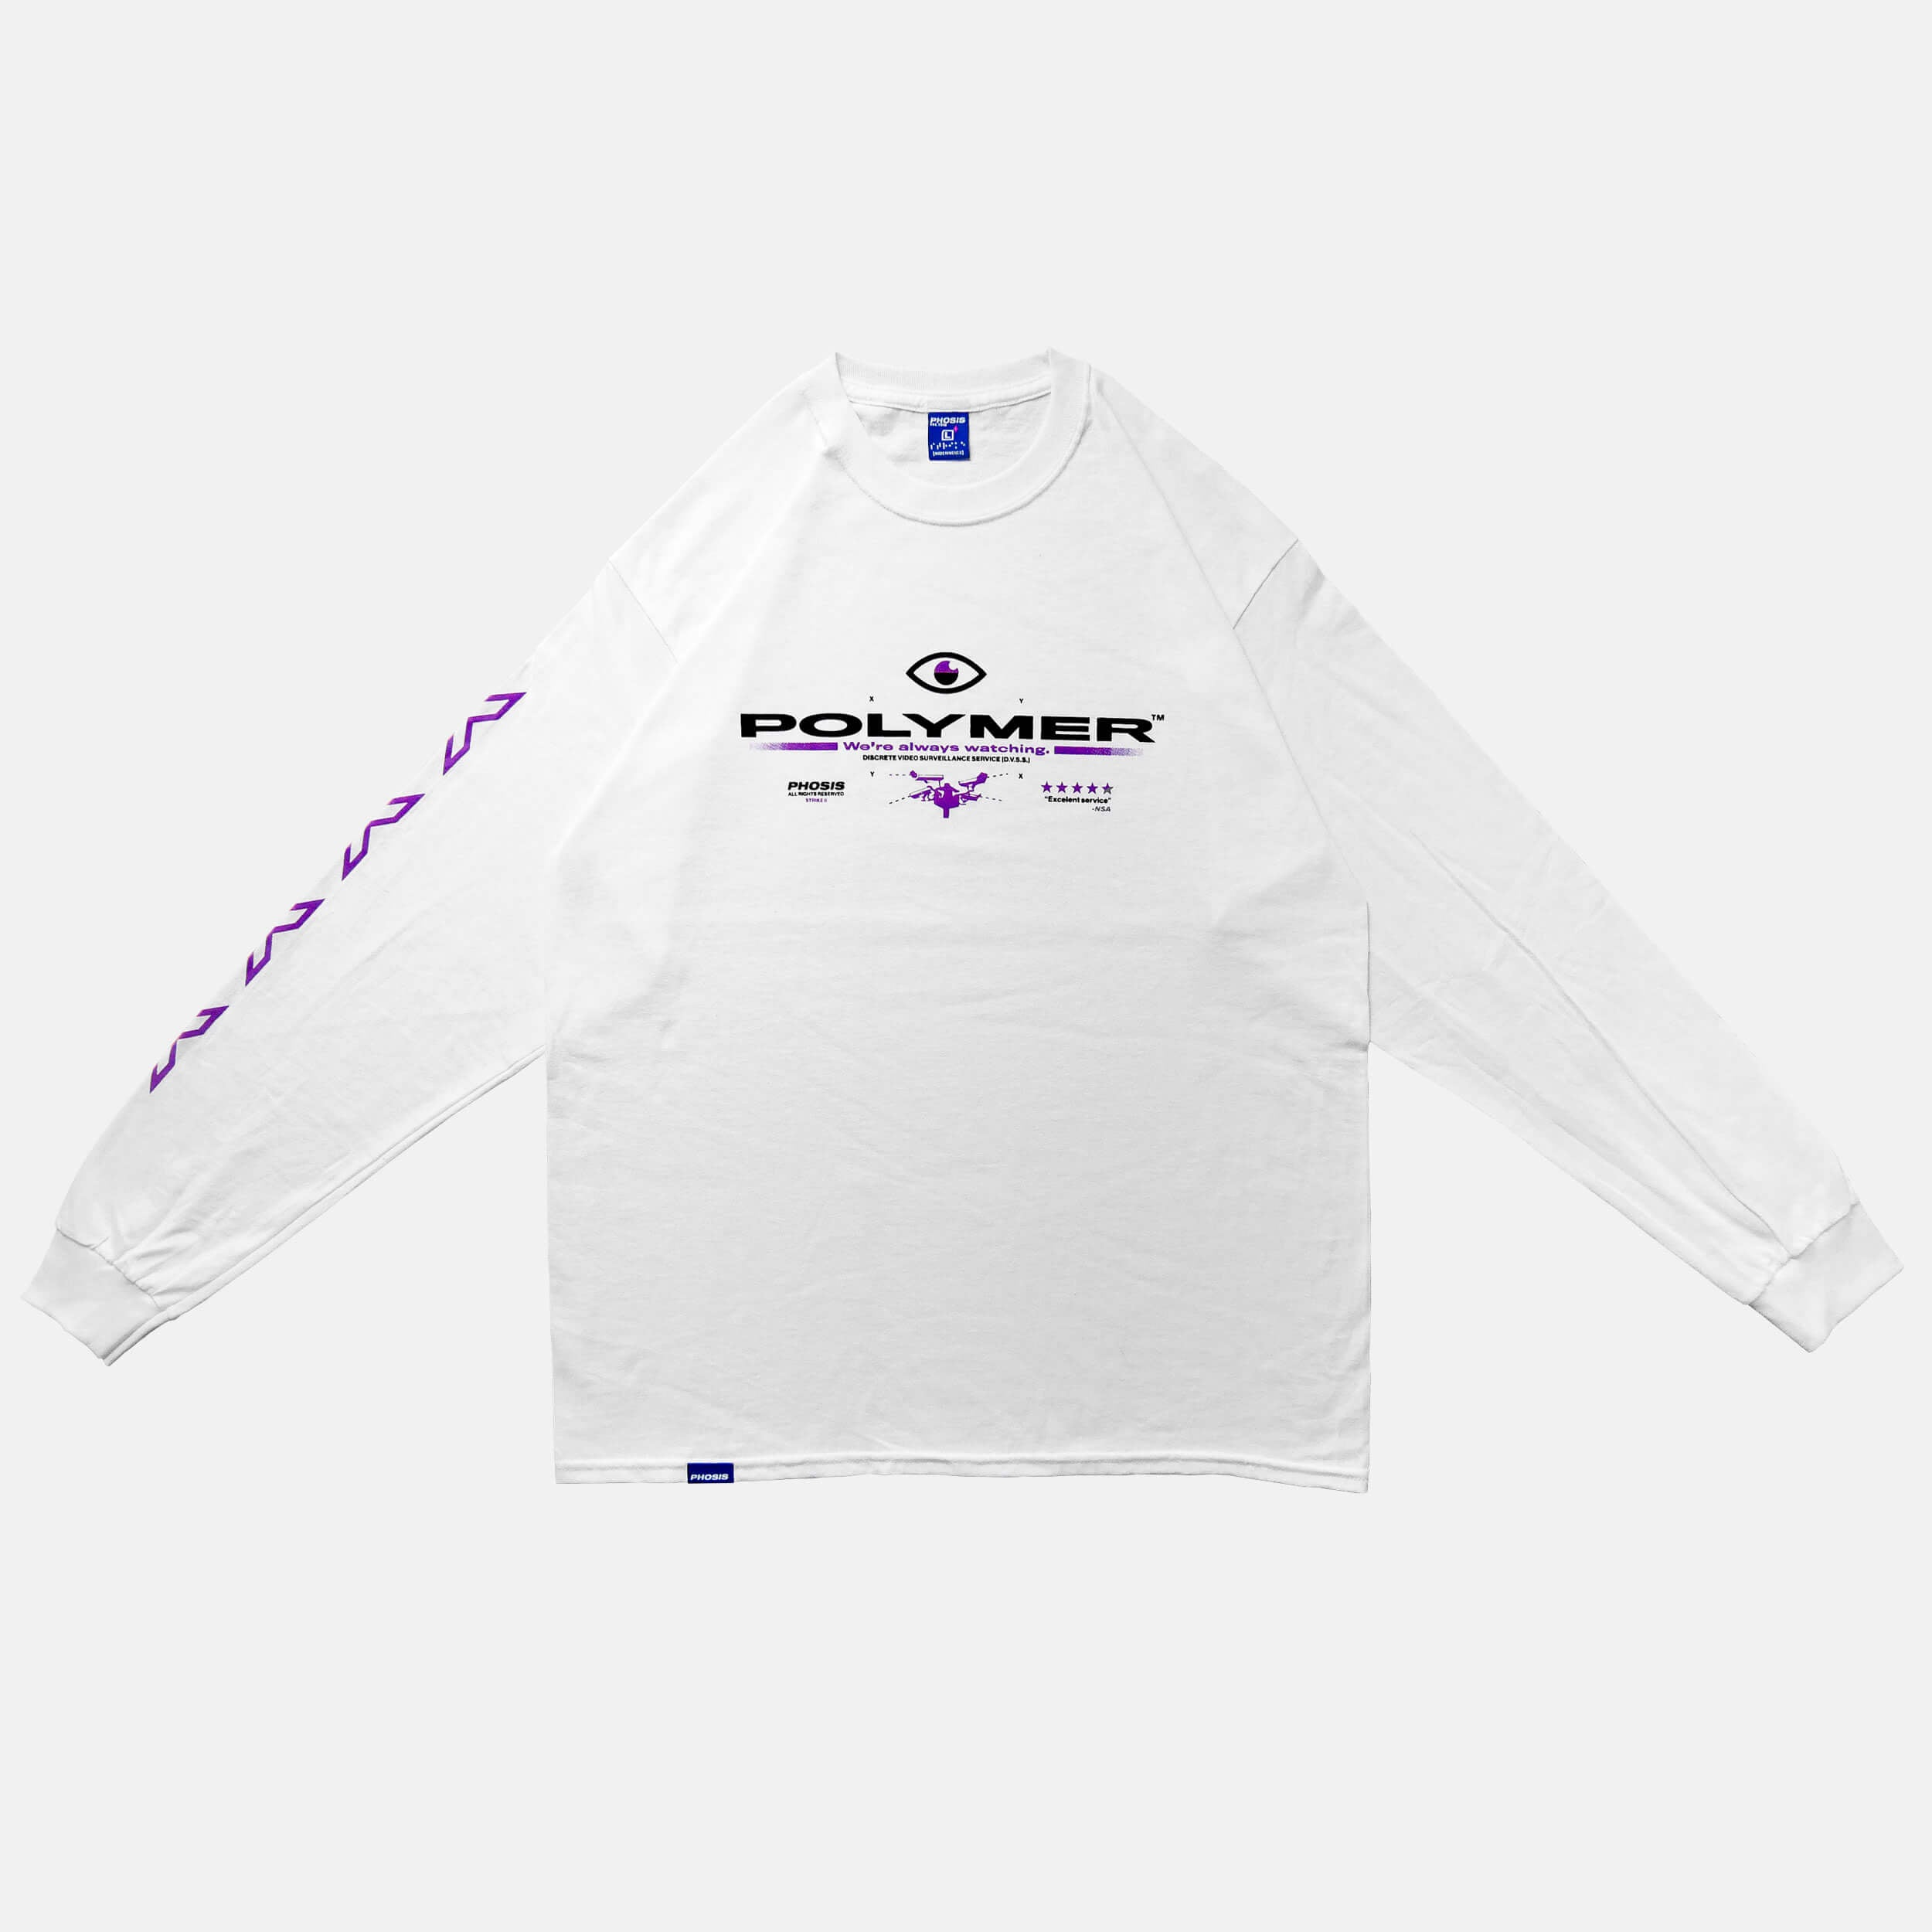 Front view of the screen-pinted POLYMER white long sleeve from PHOSIS Clothing